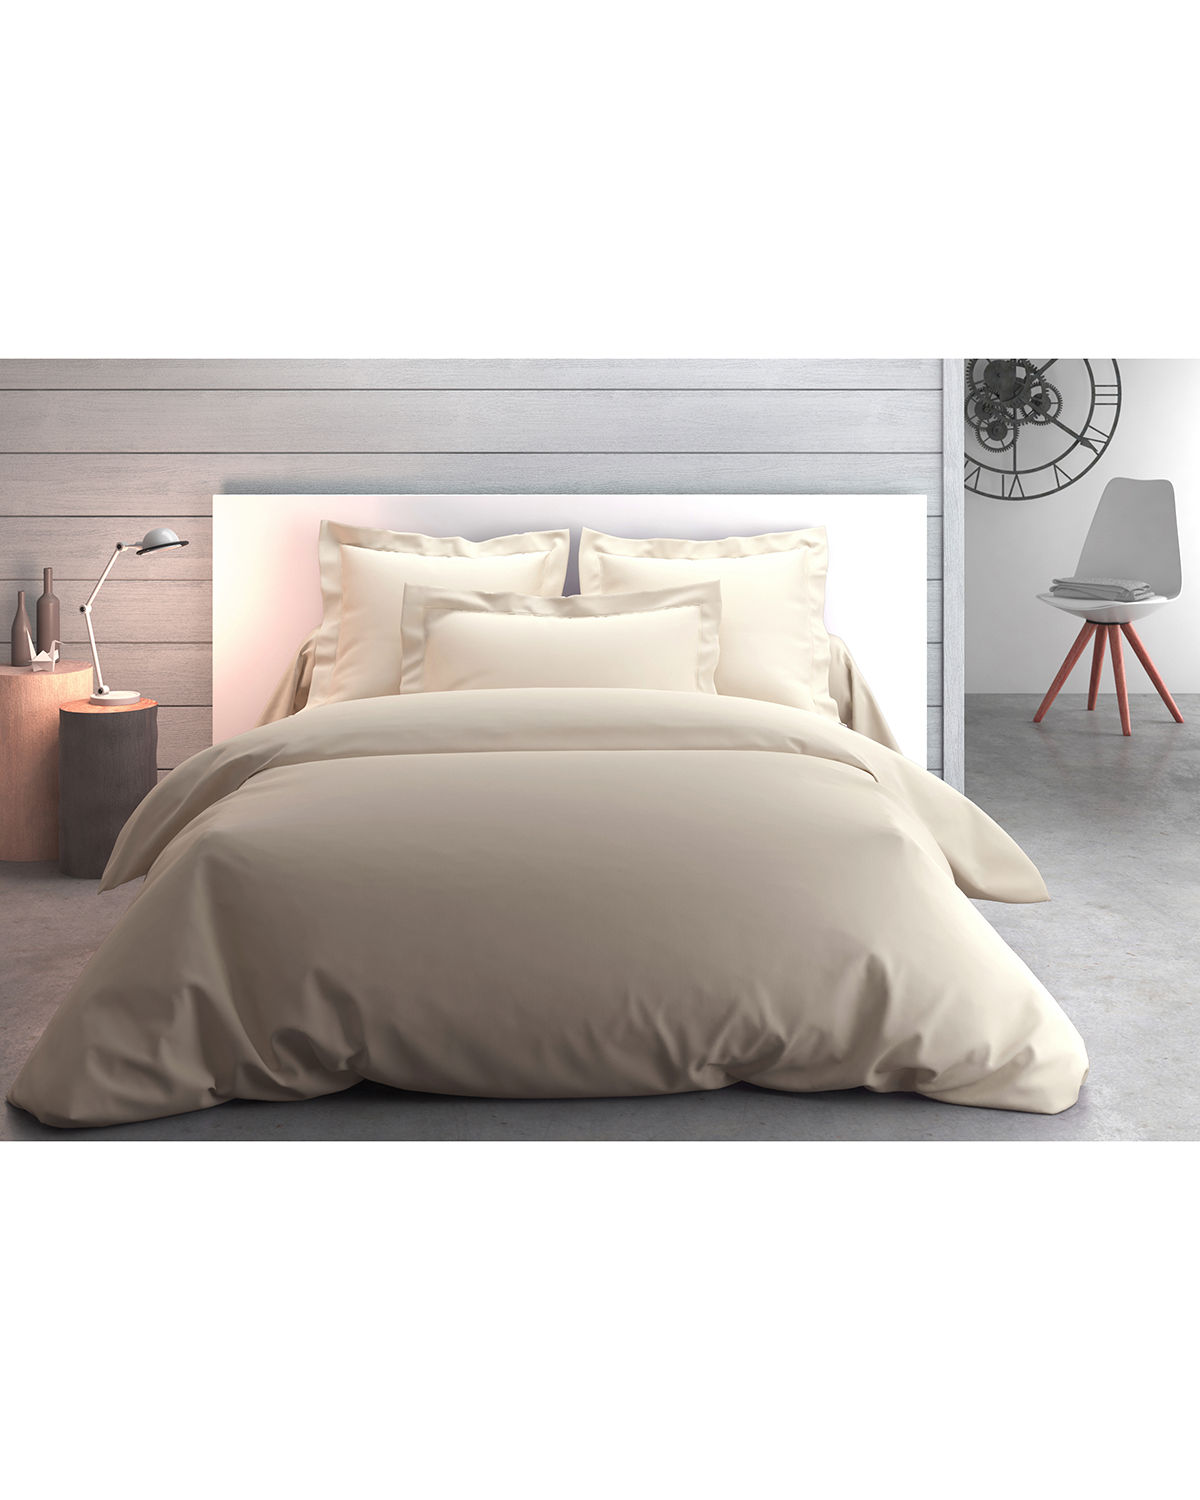 Anne De Solene Duvet covers VEXIN 200 THREAD-COUNT KING DUVET COVER